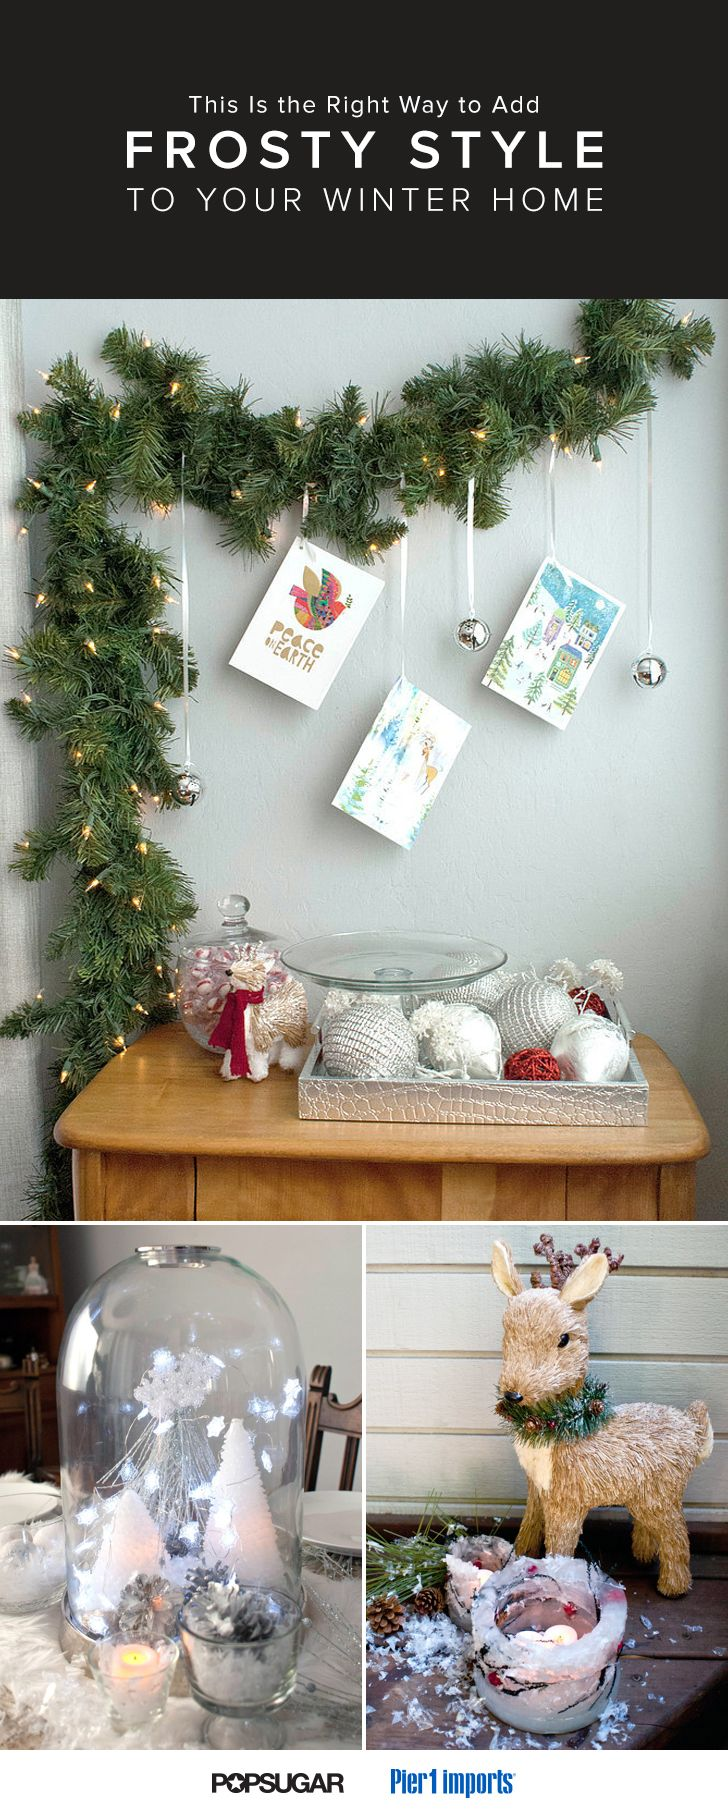 Mrs potts chip christmas decoration - 341 Best Images About Holiday Decor On Pinterest Menorah Christmas Trees And Diys